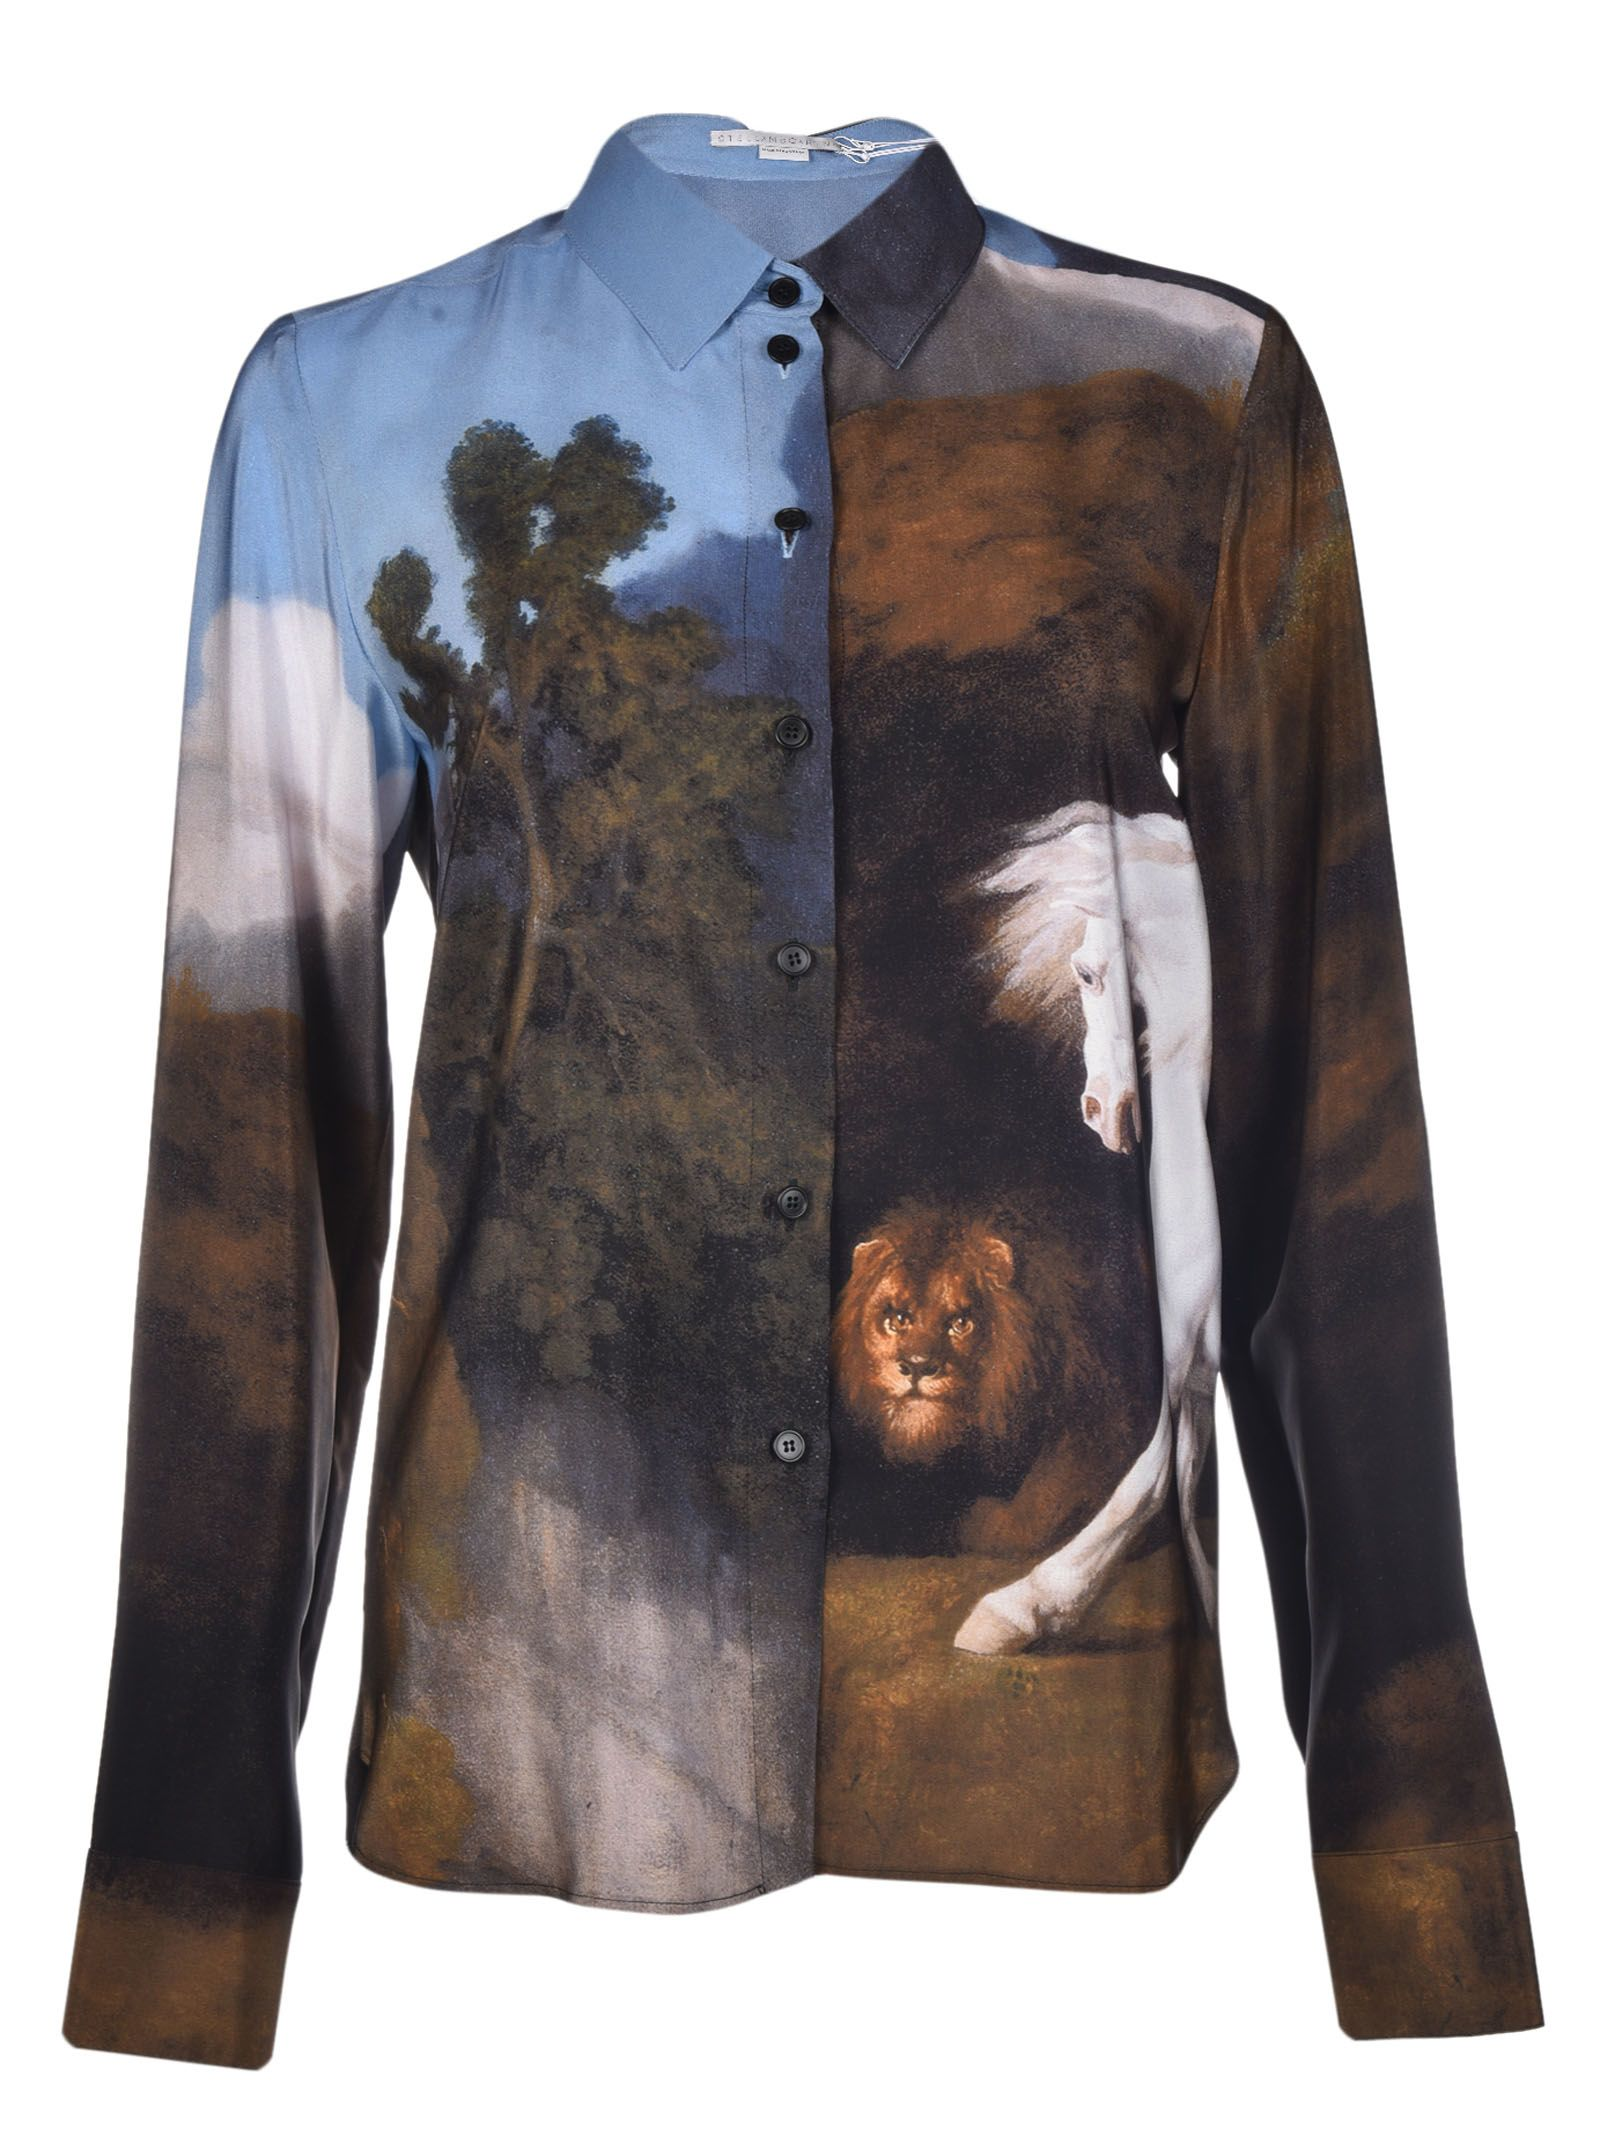 Stella McCartney Landscape Printed Shirt